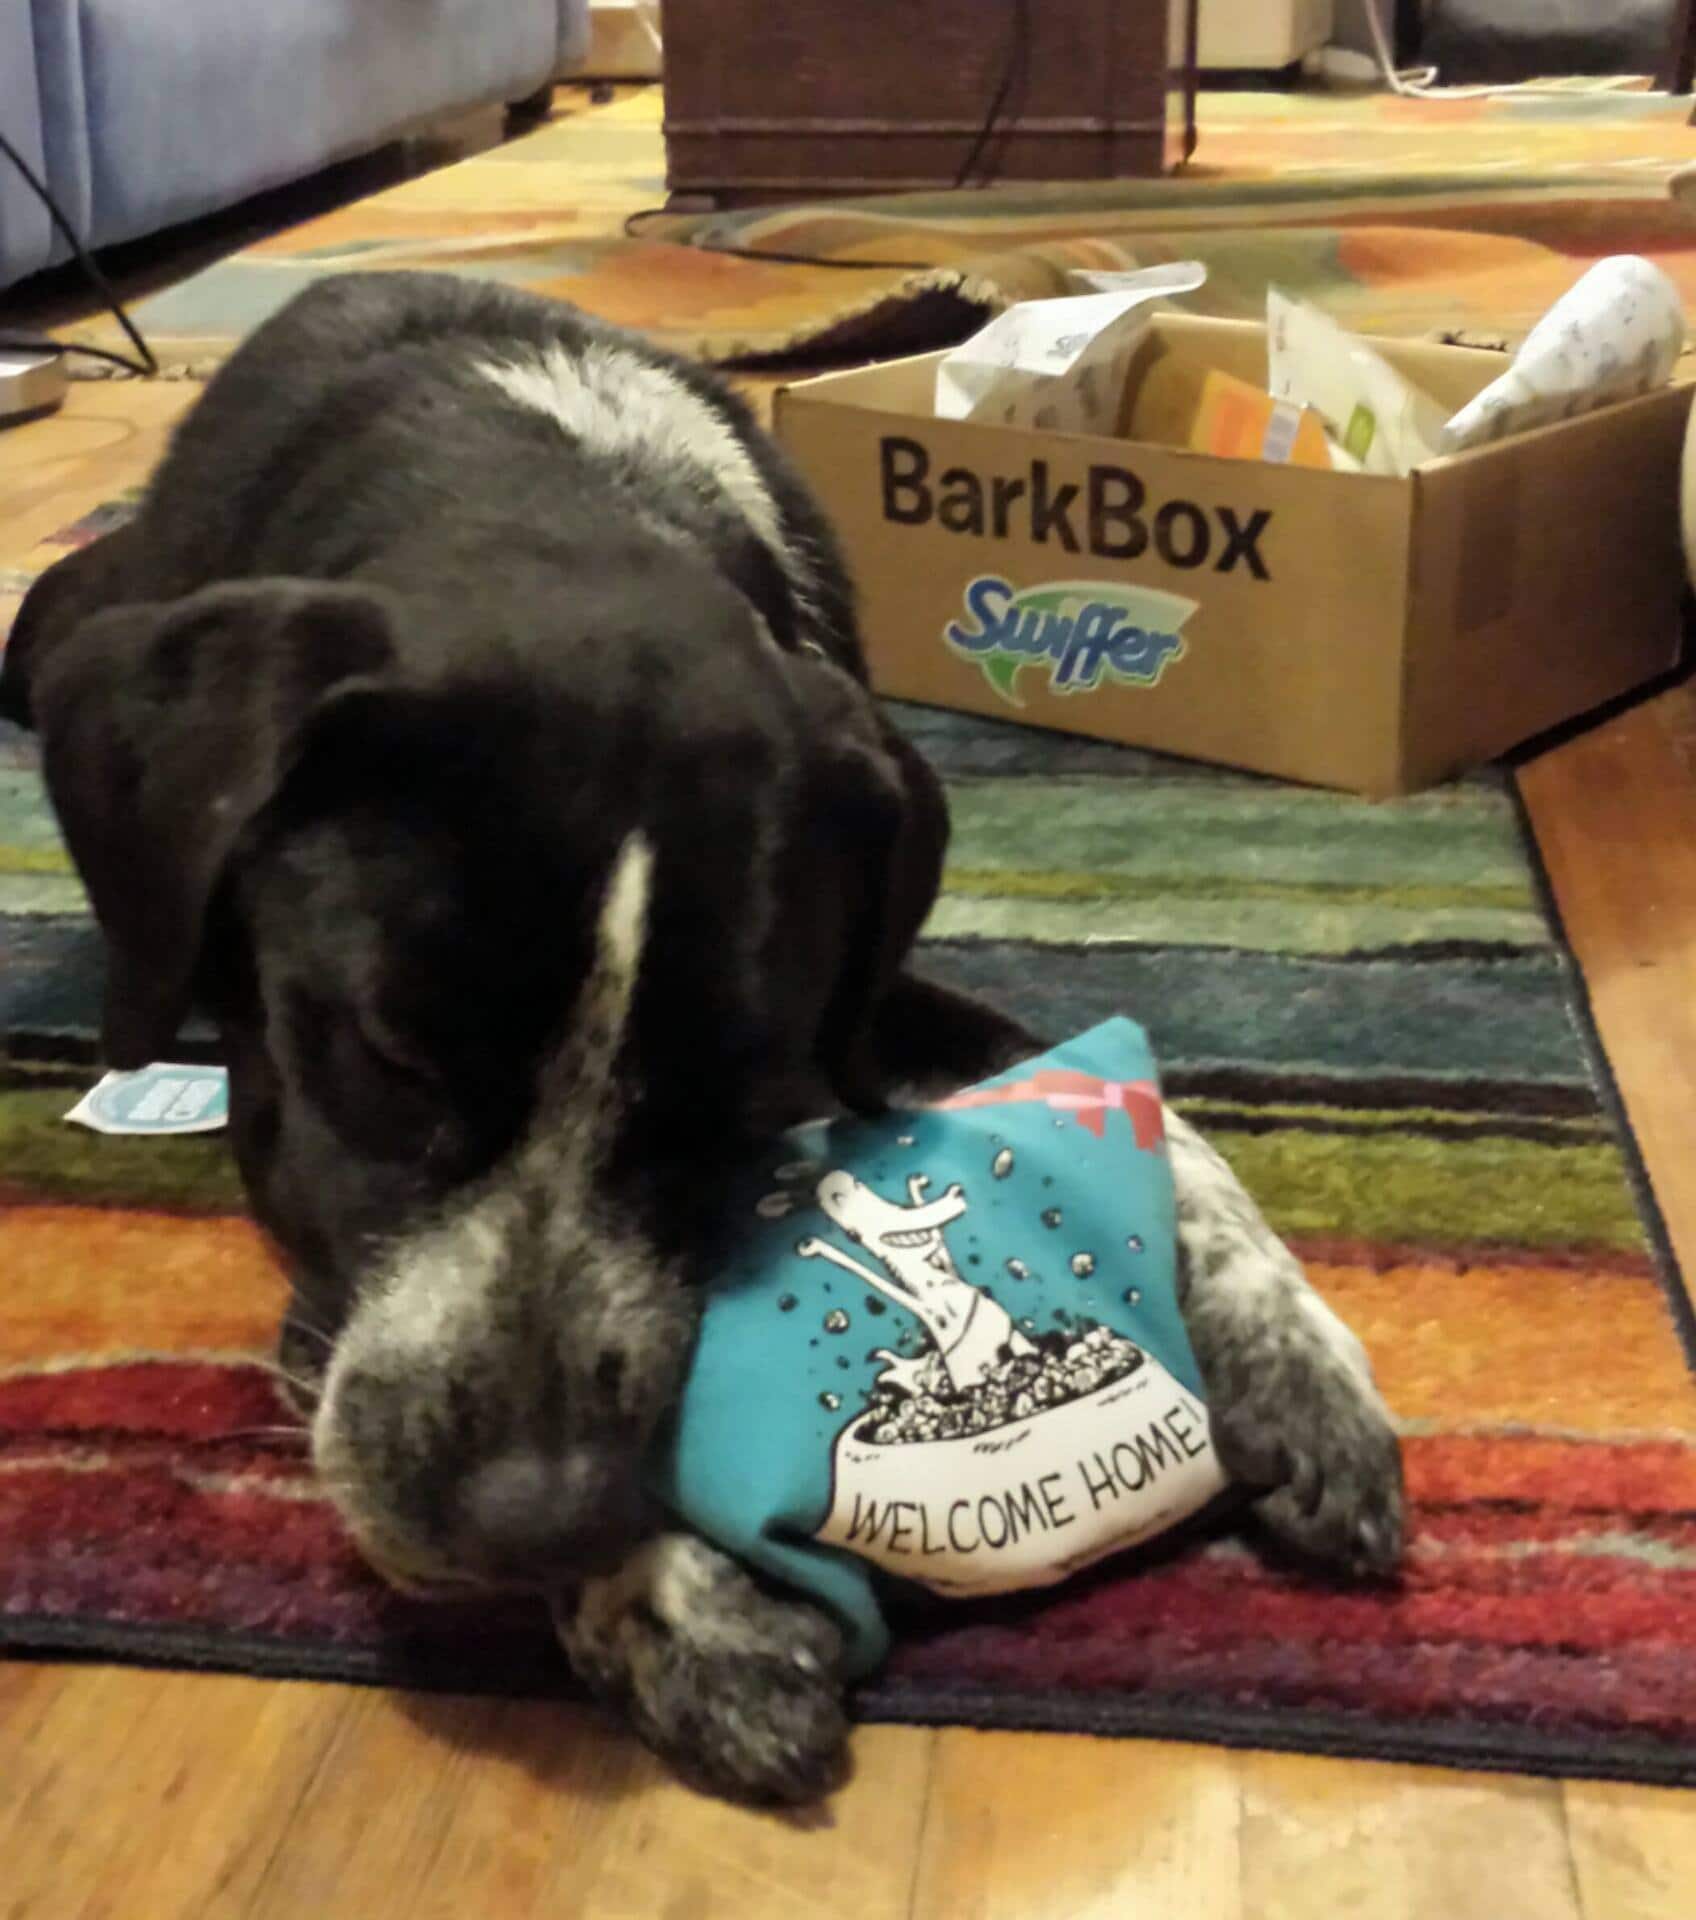 There are toys in BarkBoxes